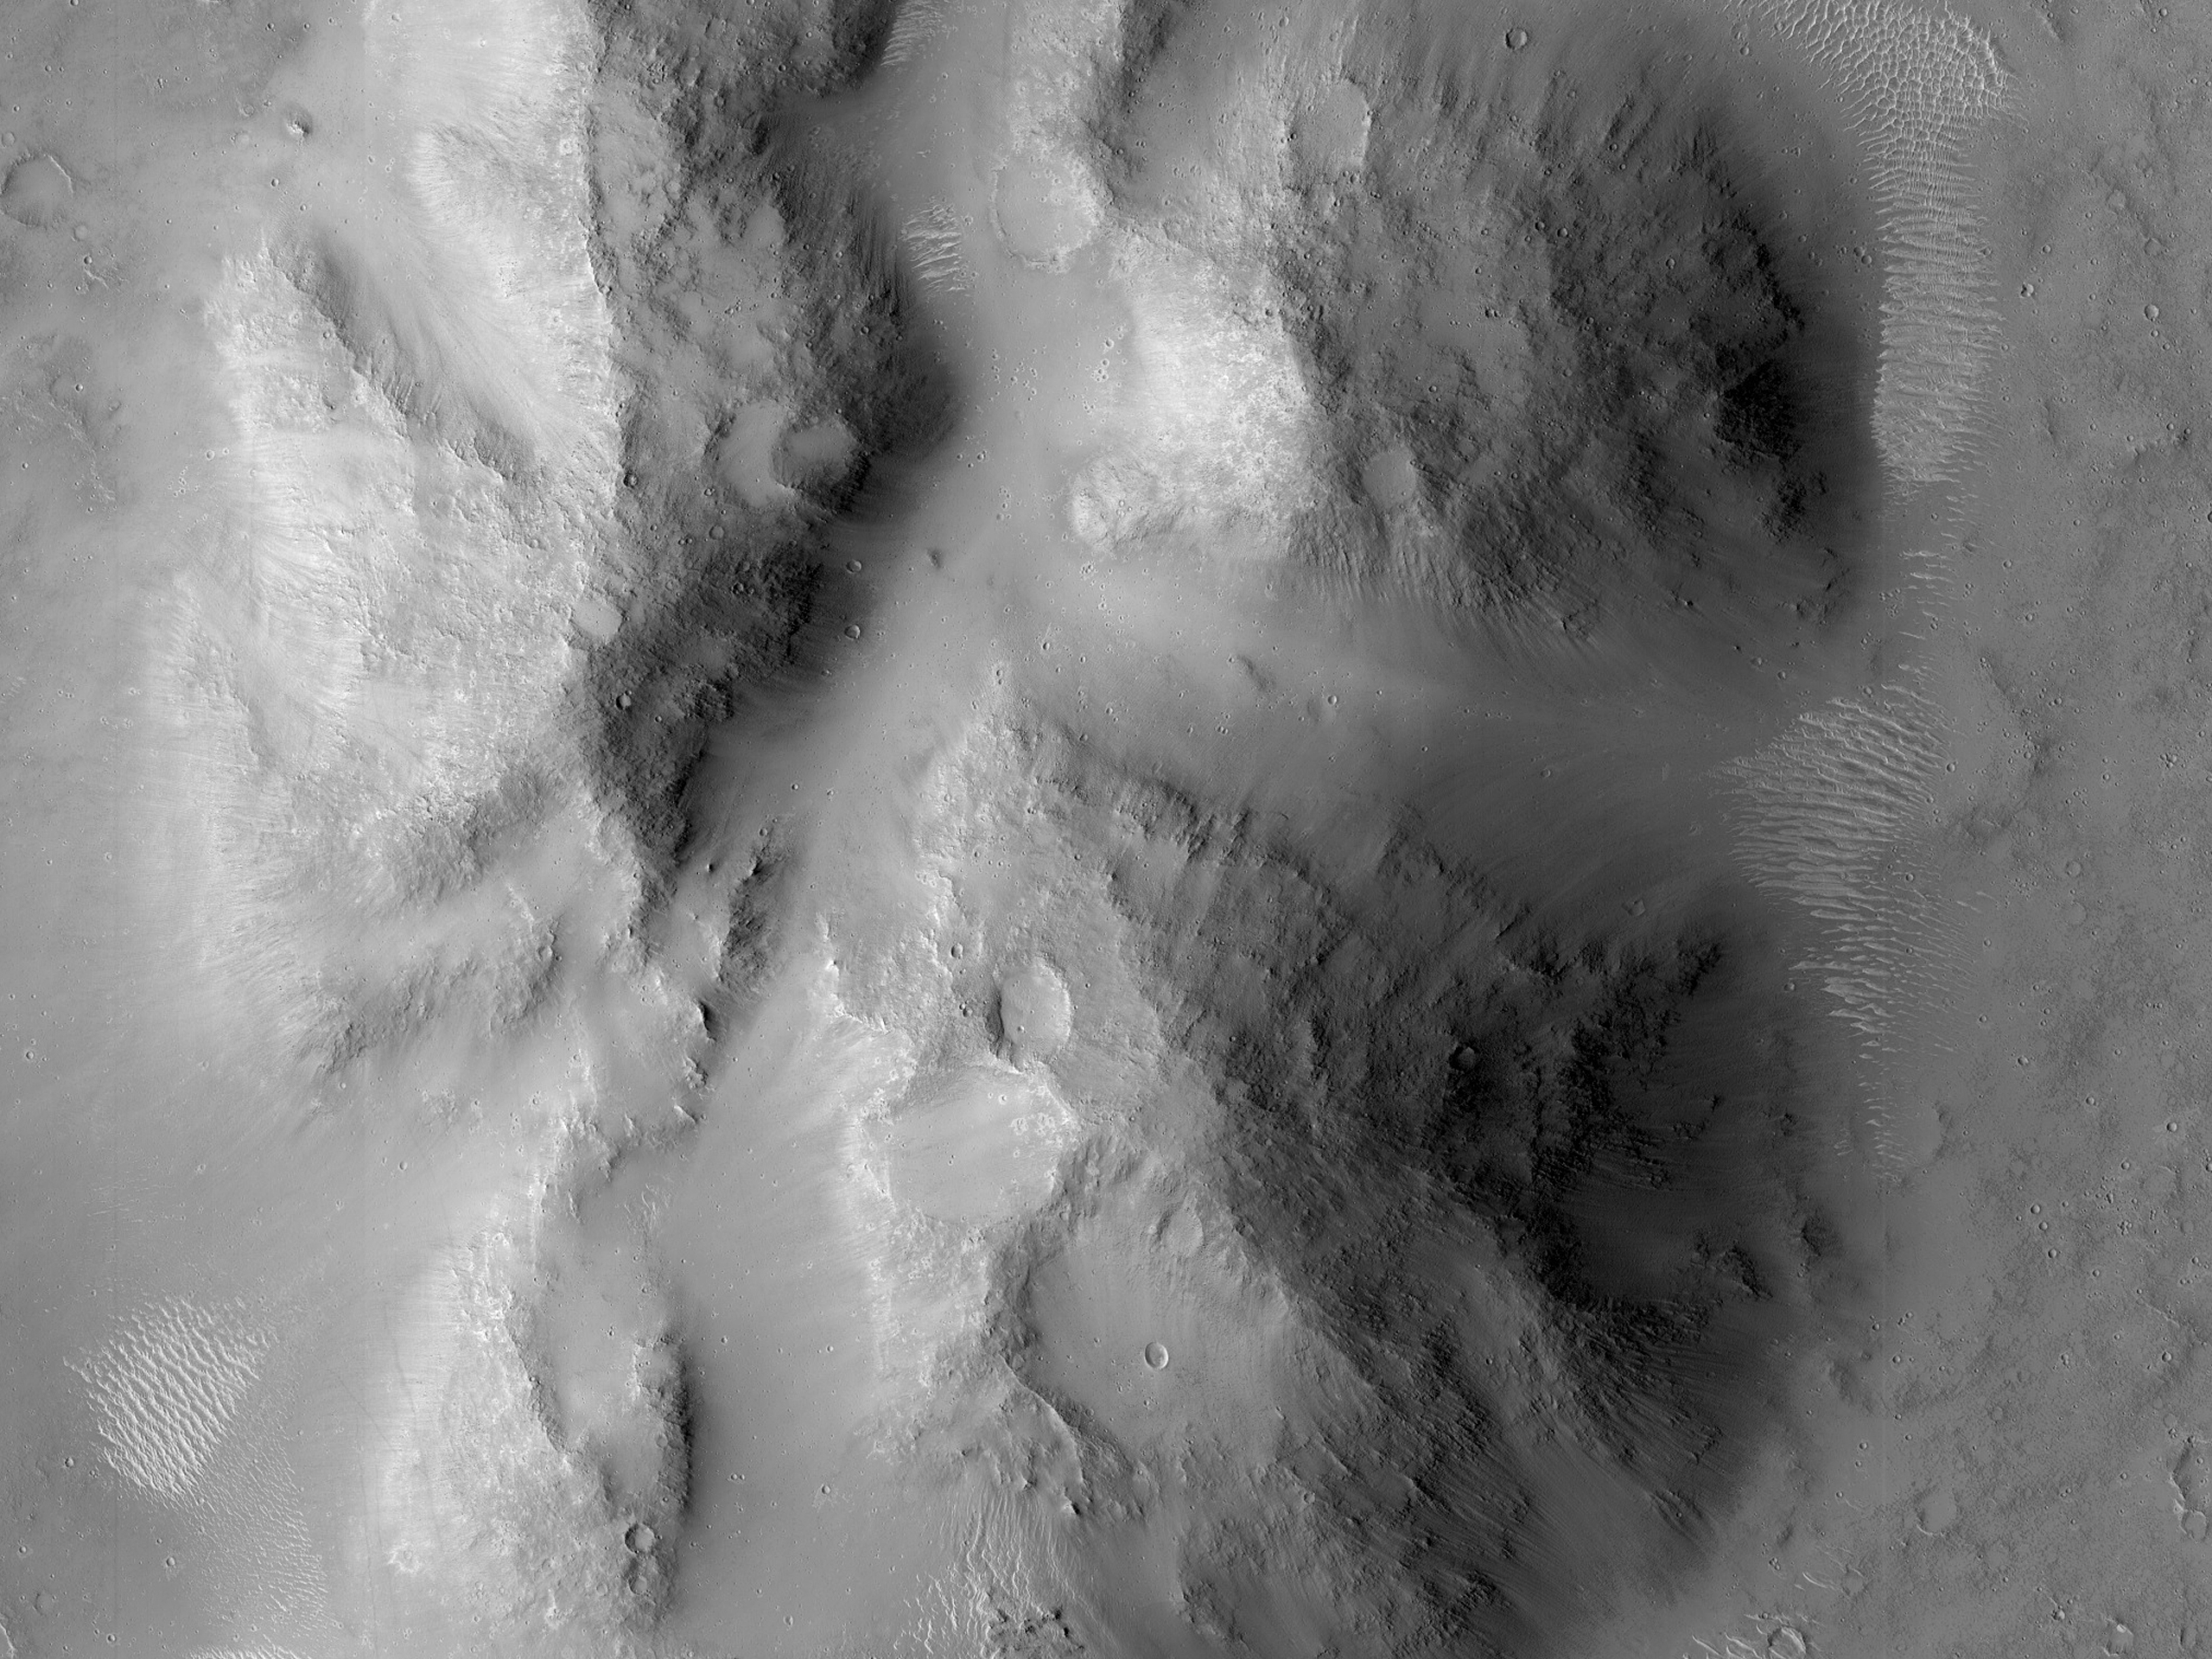 Clustered Mounds